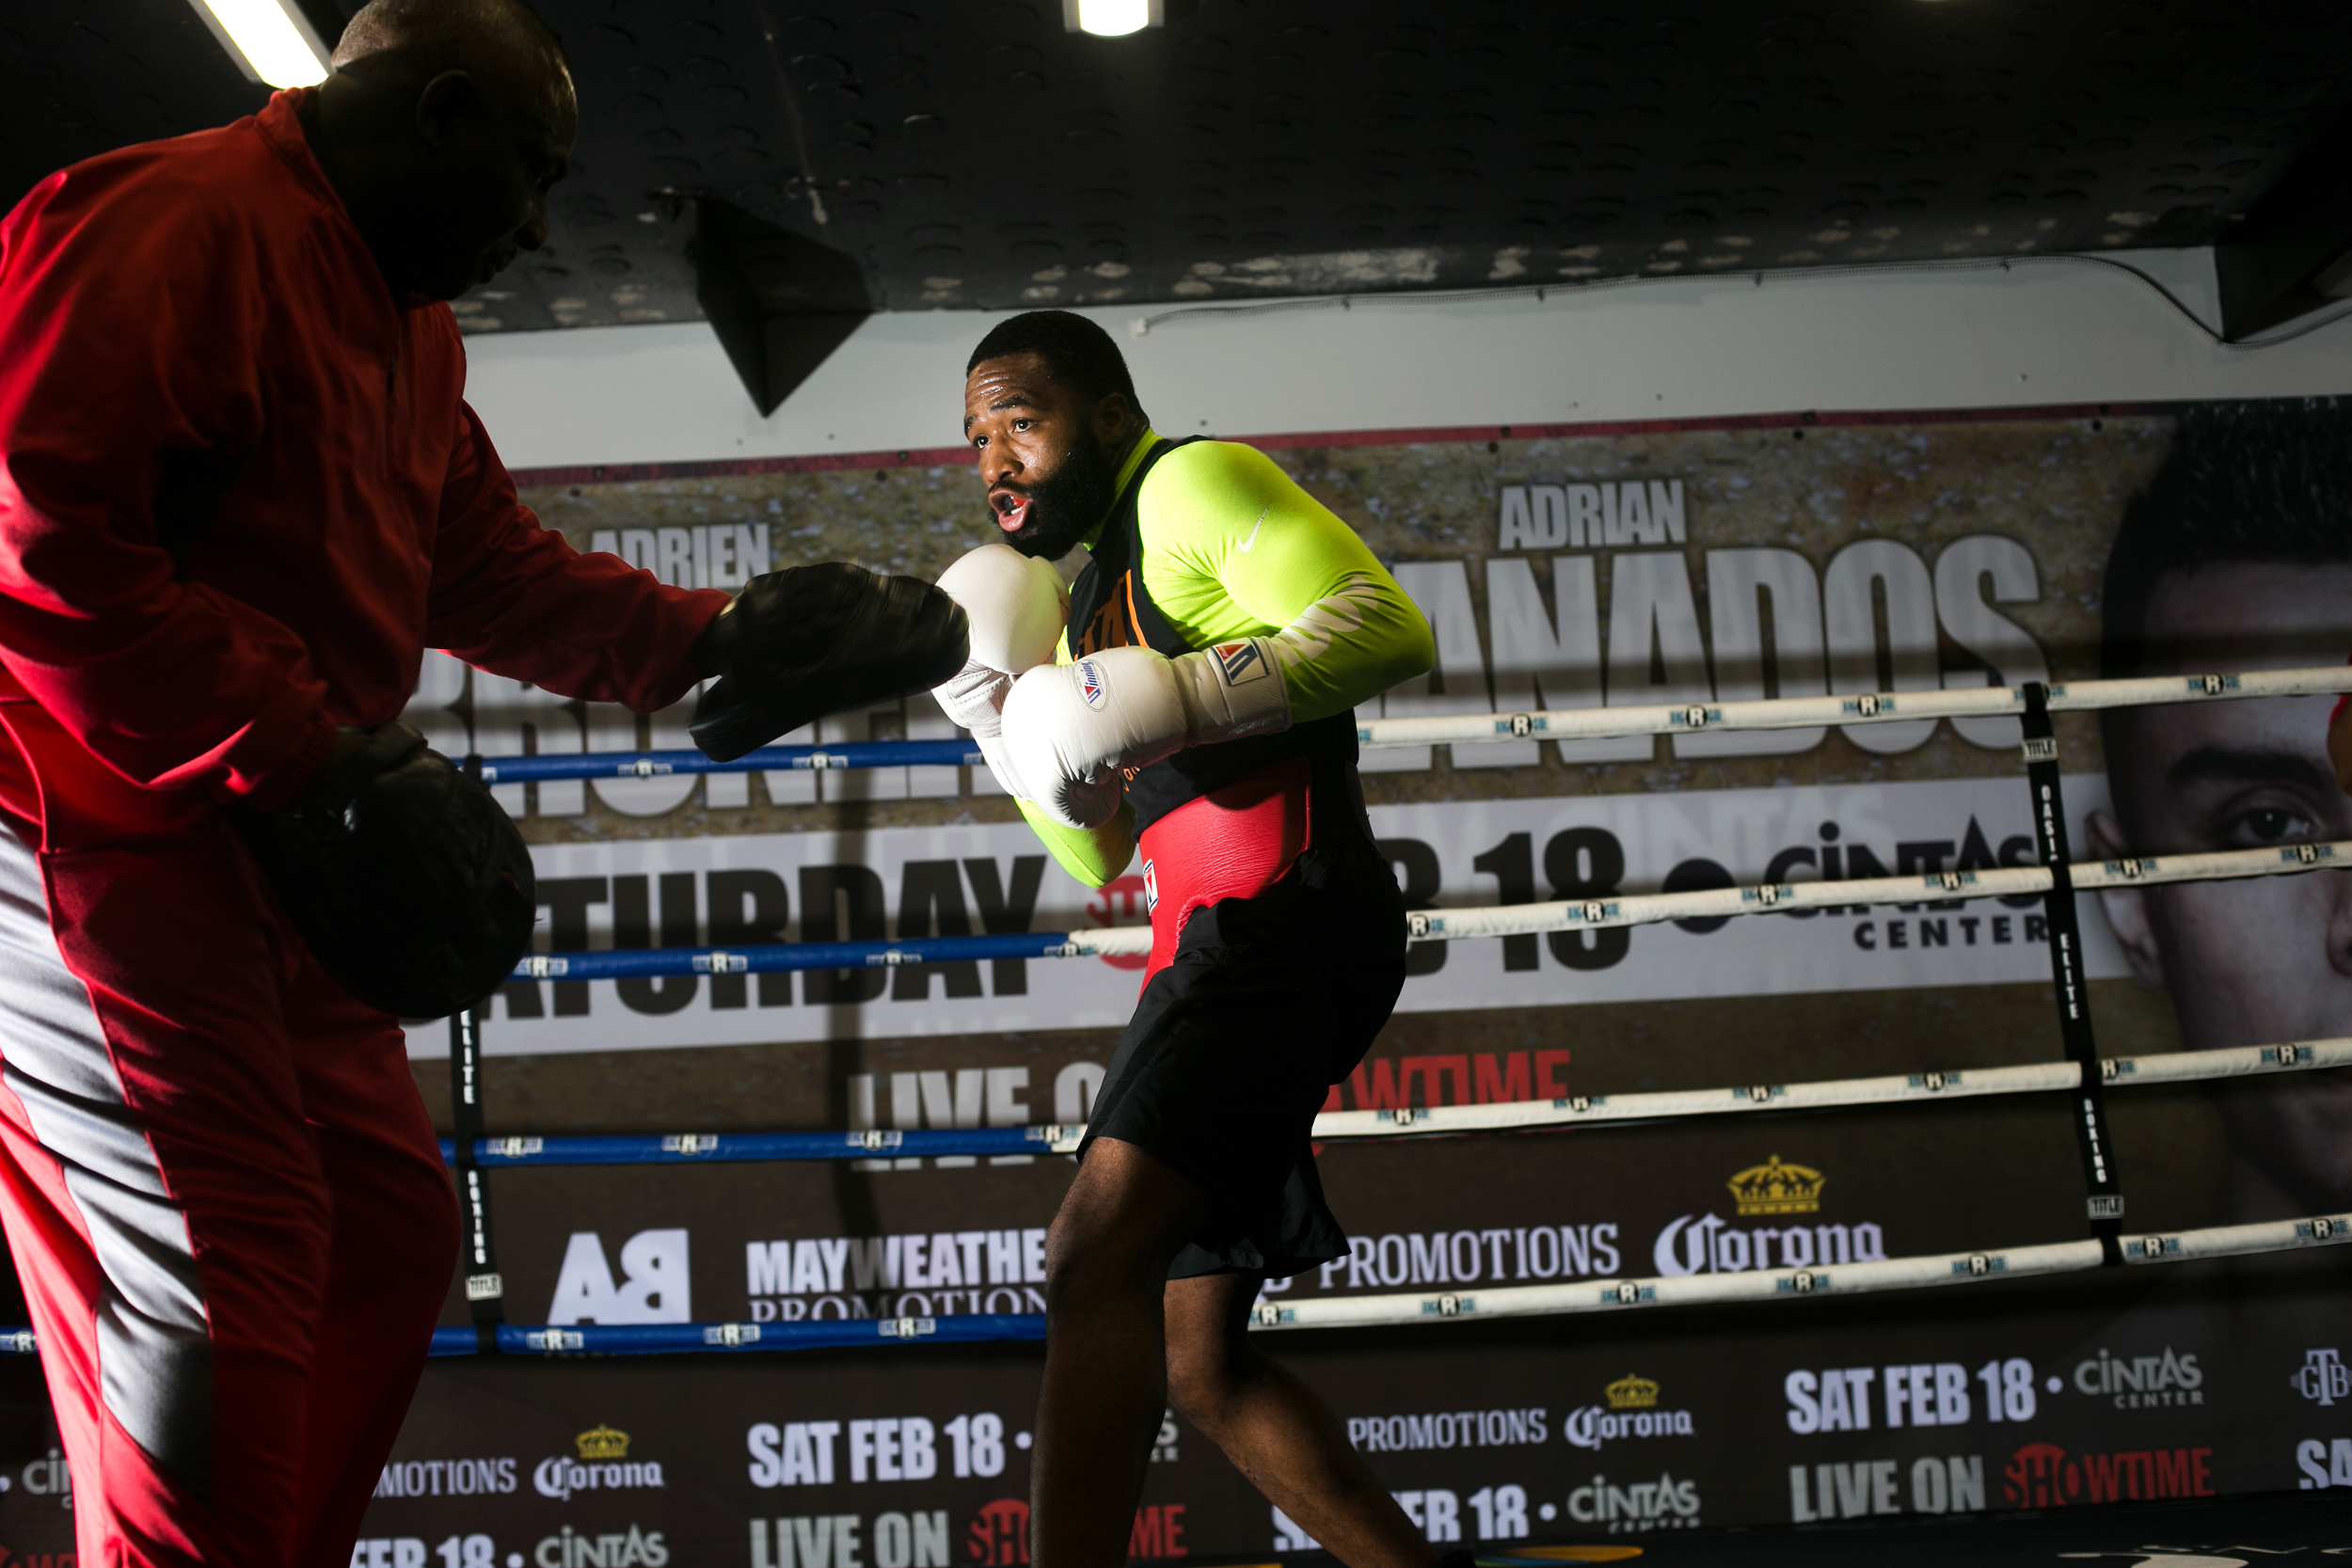 Adrien Broner practices at his gym, the Oasis Elite Boxing gym in Cincinnati, OH, on February 15, 2017.